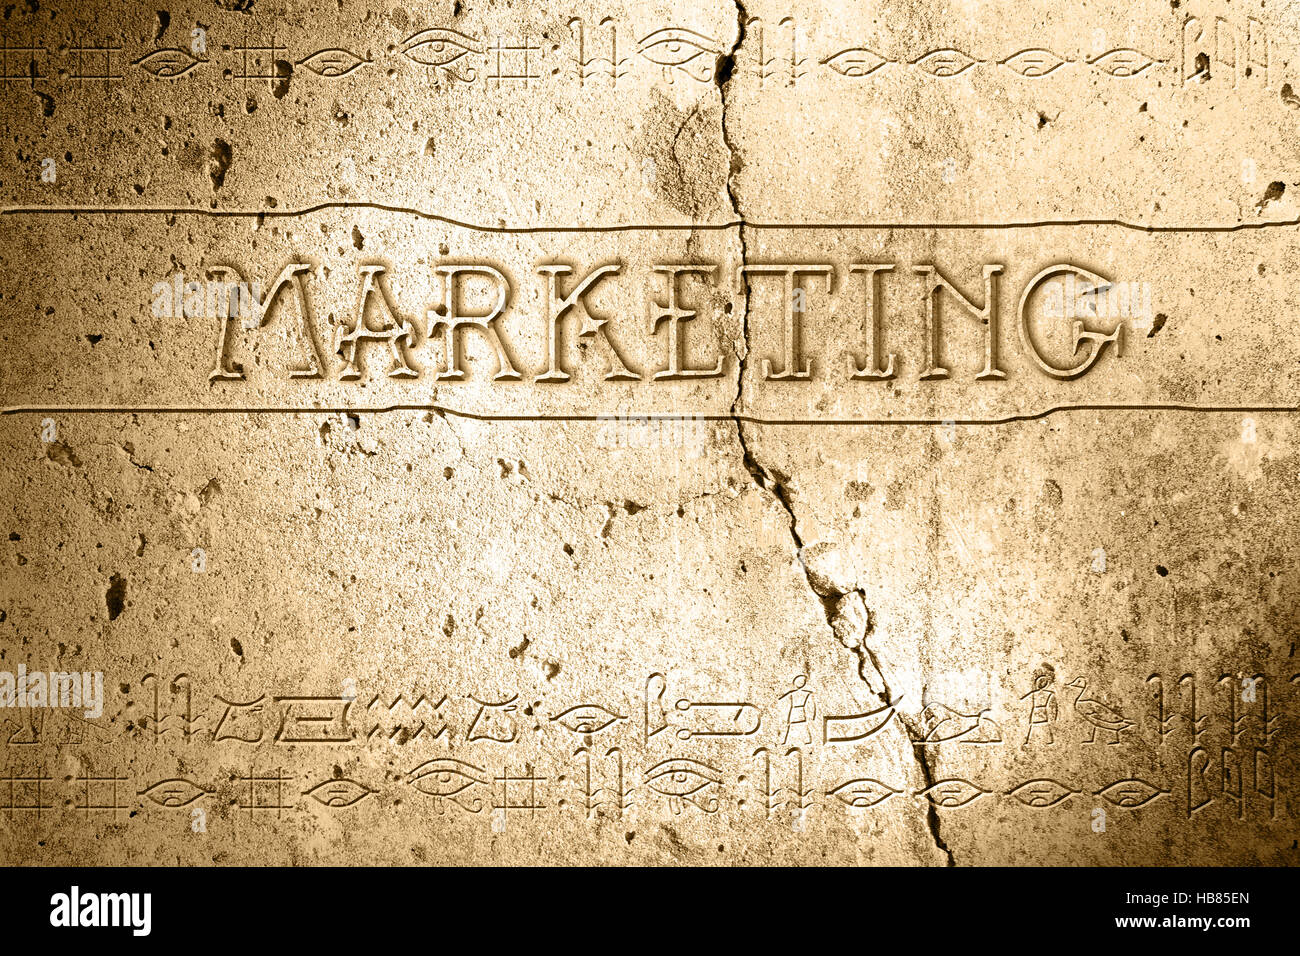 marketing - Stock Image